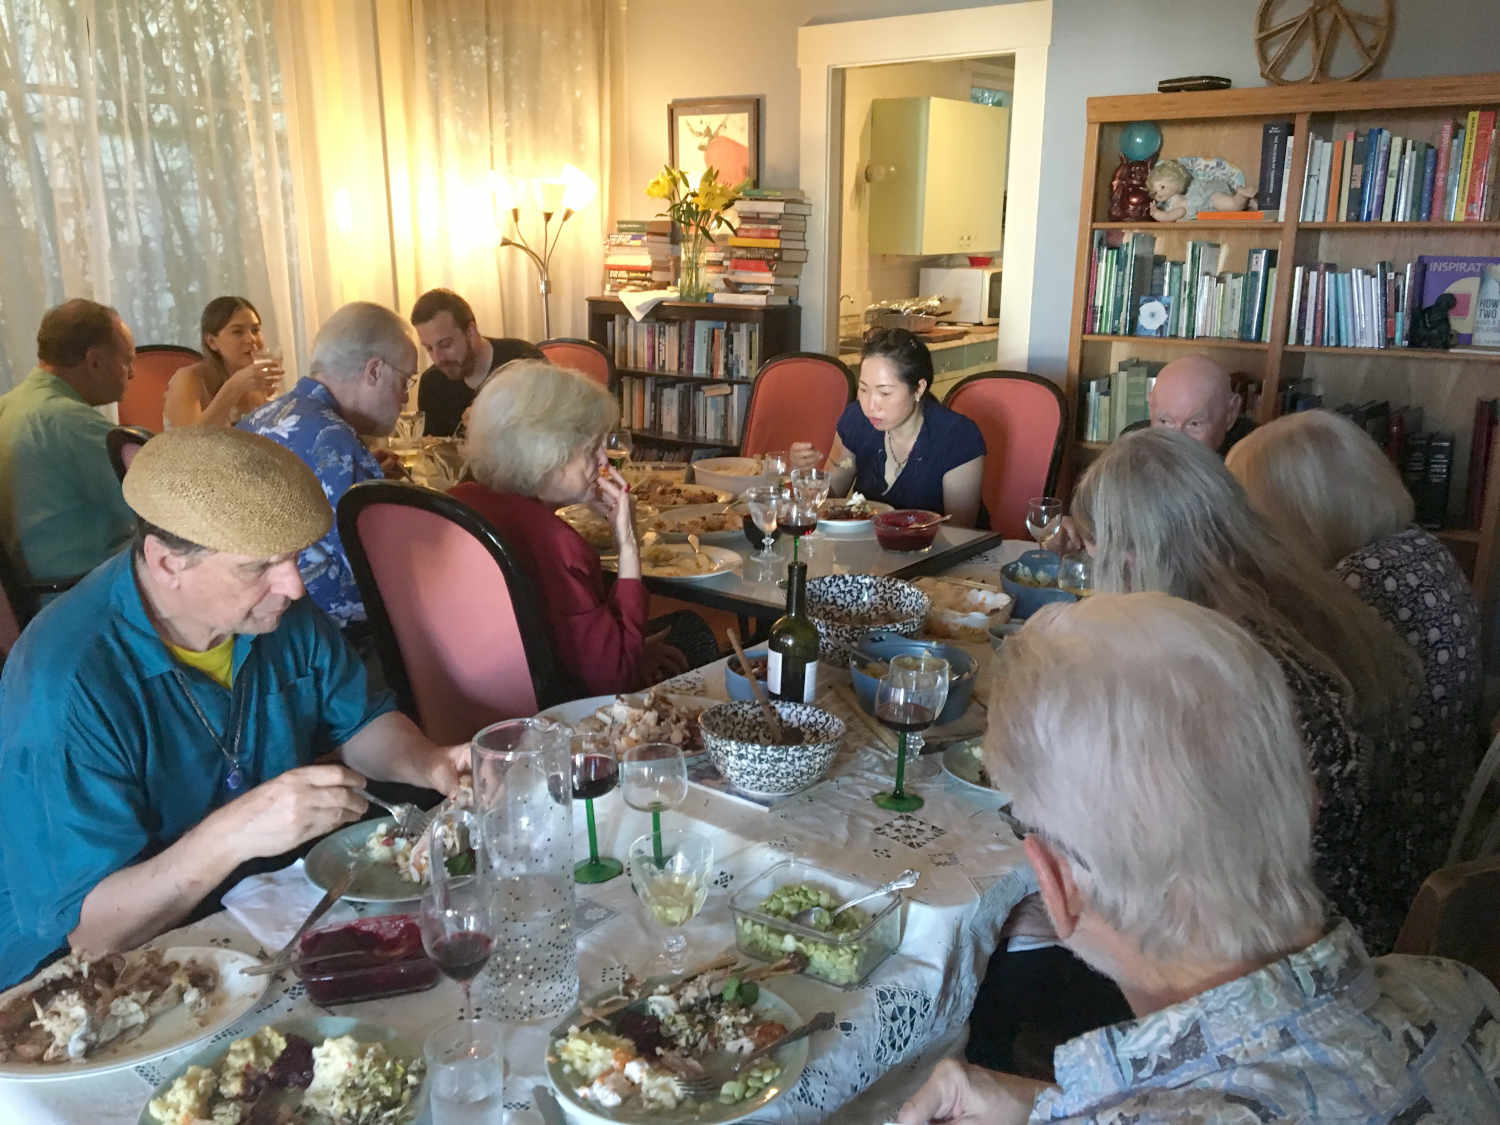 Thanksgiving 2018: Spreading Peace in the World